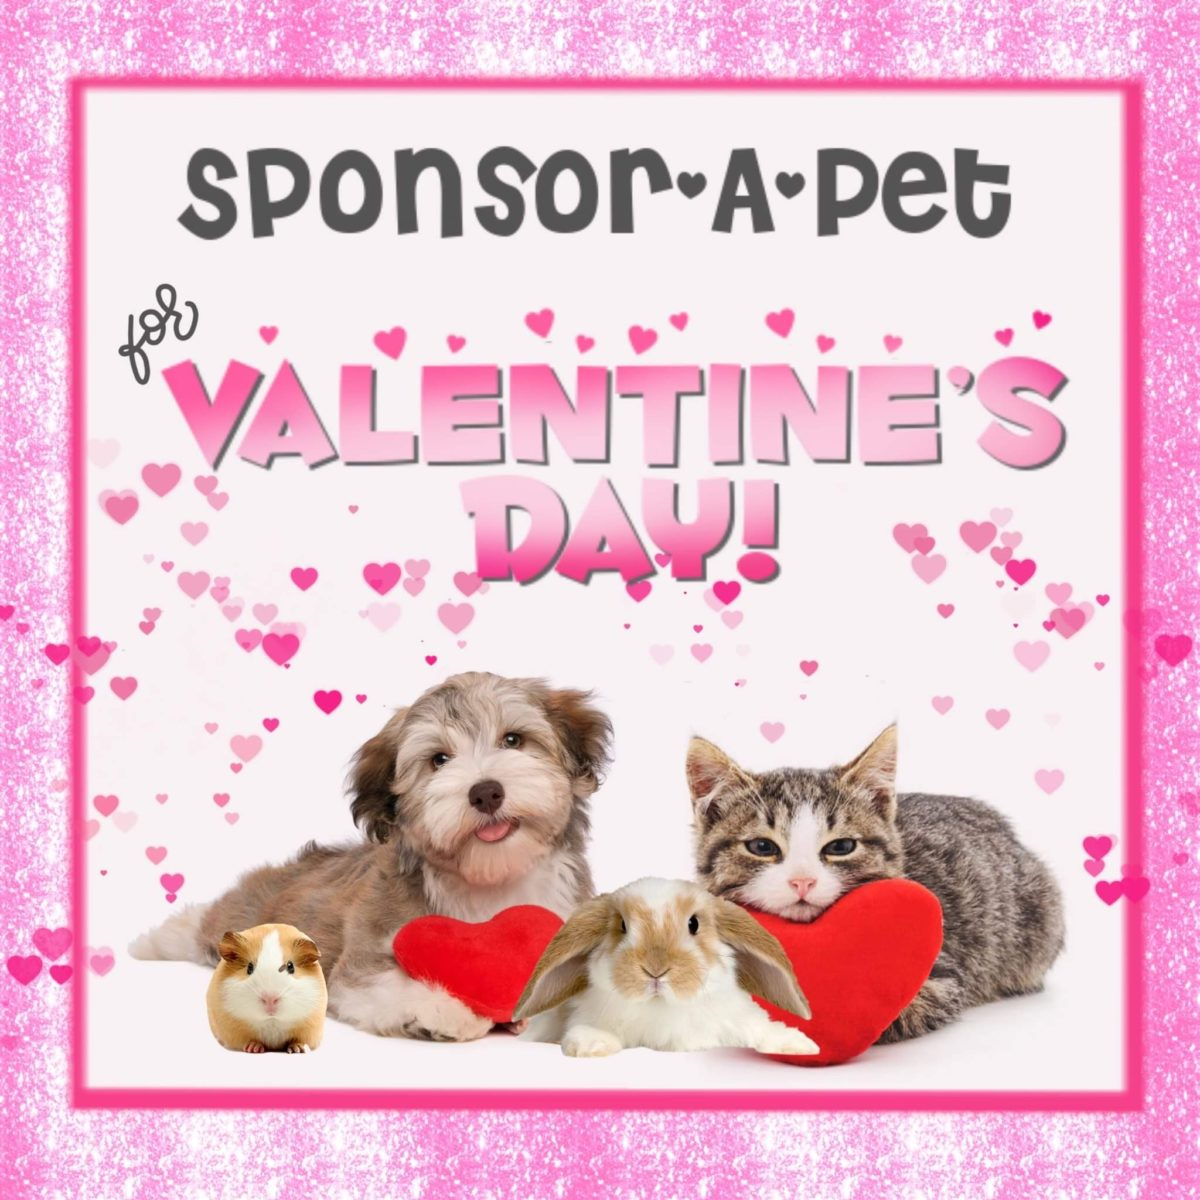 Sponsor a Pet for Valentine's Day!